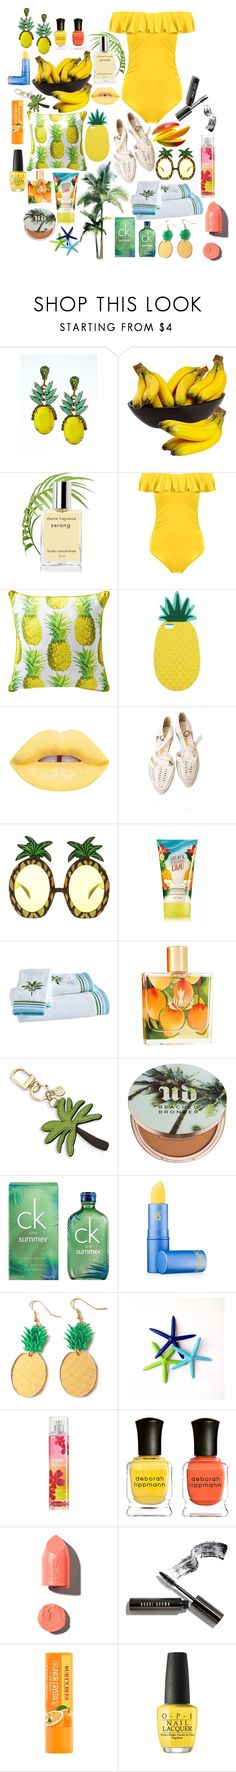 """Tropical"" by yulemoon ❤ liked on Polyvore featuring Banana Republic, Miss Selfridge, Lime Crime, ASOS, Malie Organics, Tory Burch, Urban Decay, Calvin Klein, Lipstick Queen and Finest Imaginary"